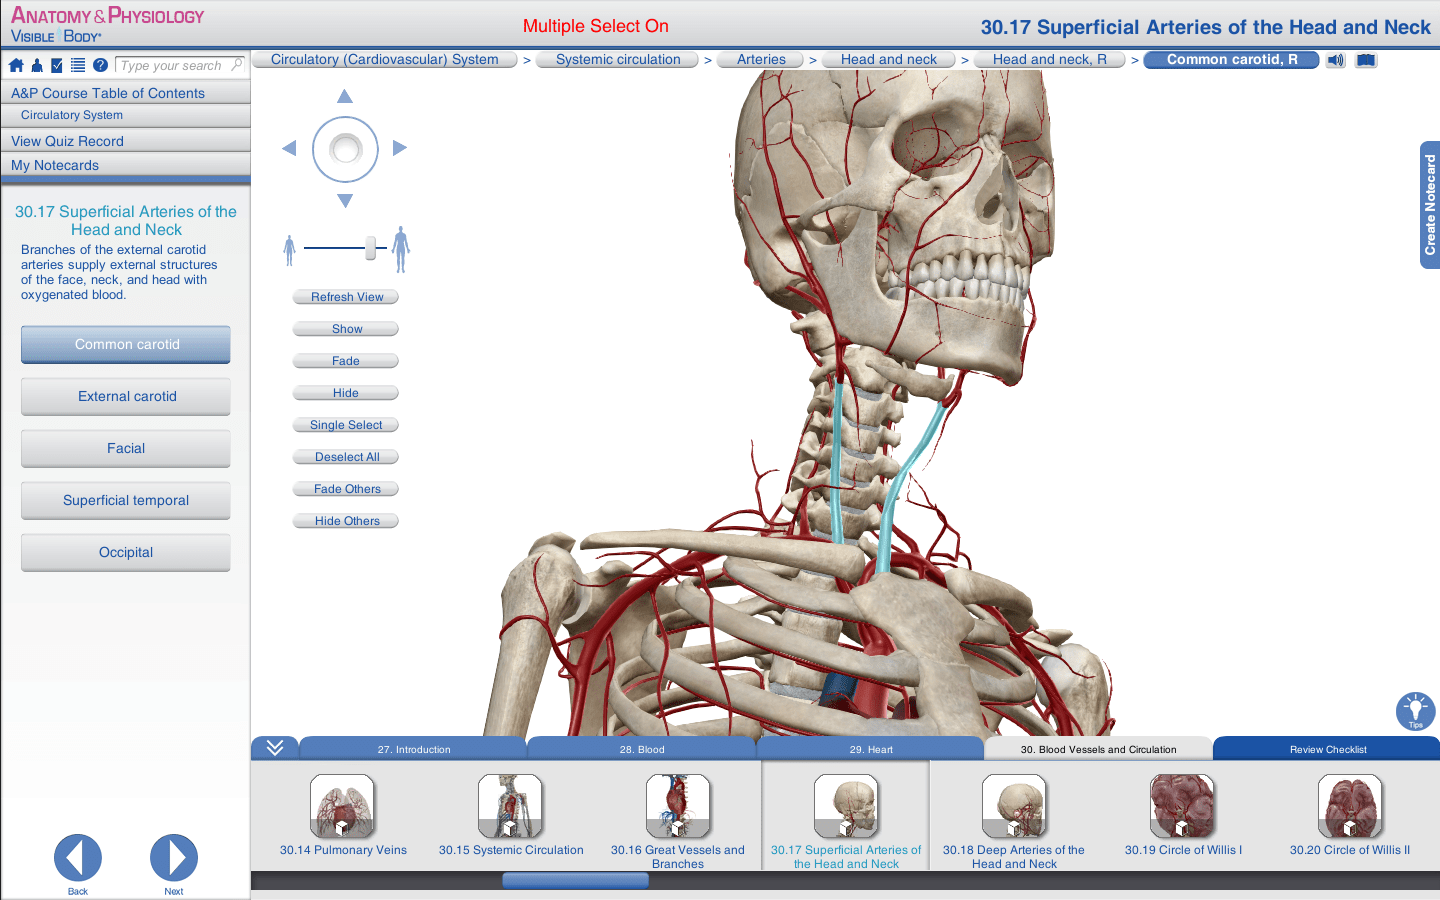 Download Gratis Visible Body Anatomy and Physiology Full Version